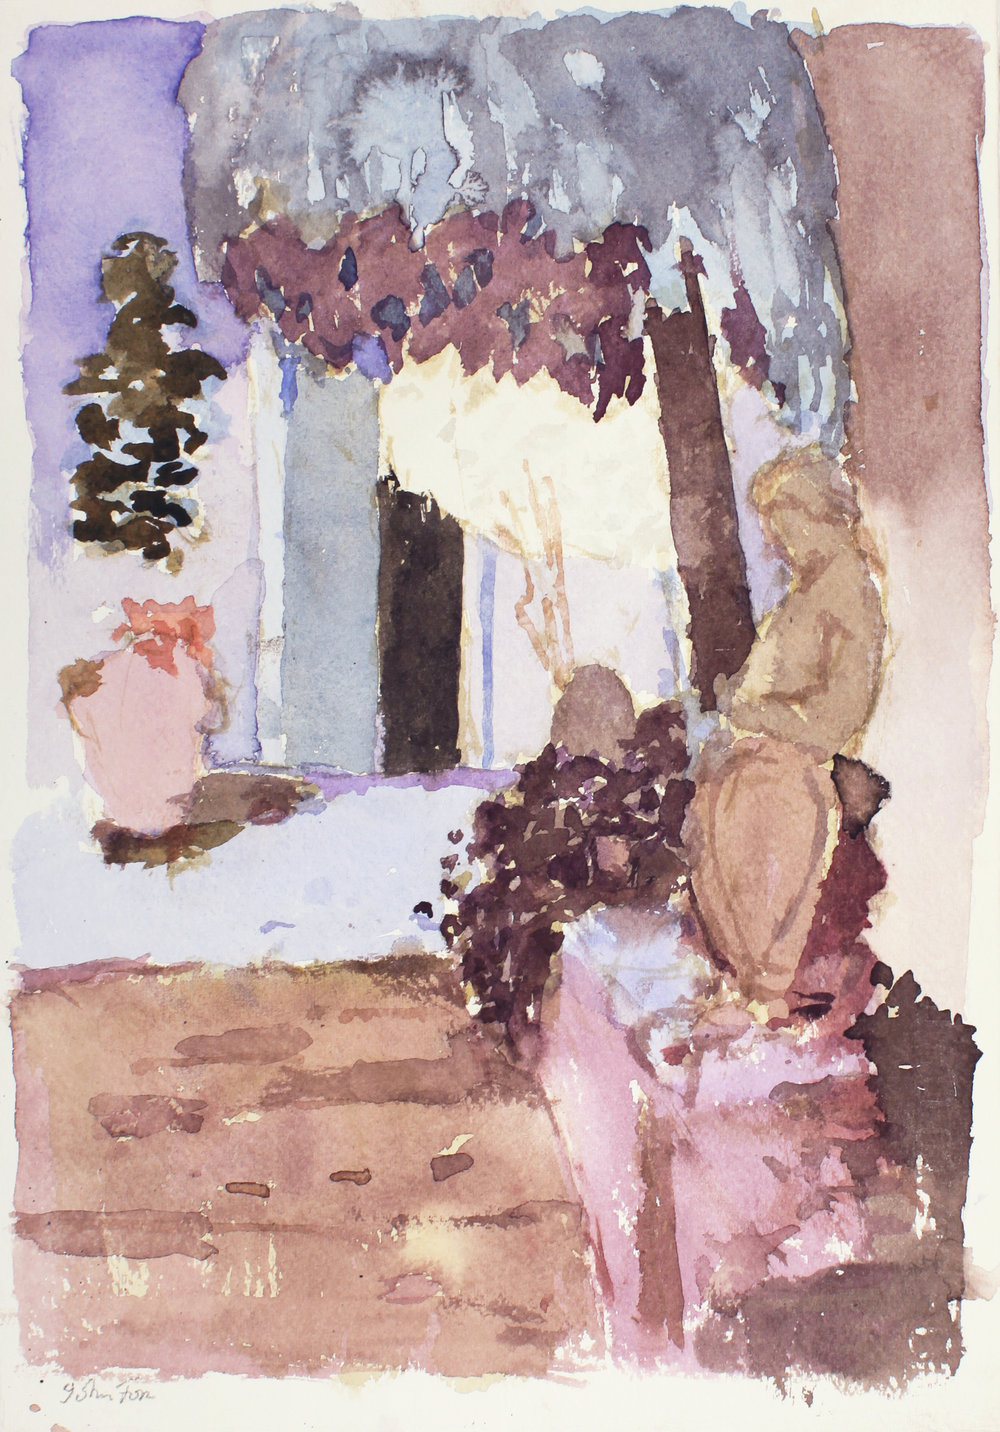 1997_Habsburg_Garden_watercolour_on_paper_14x10in_-WPF330.jpg